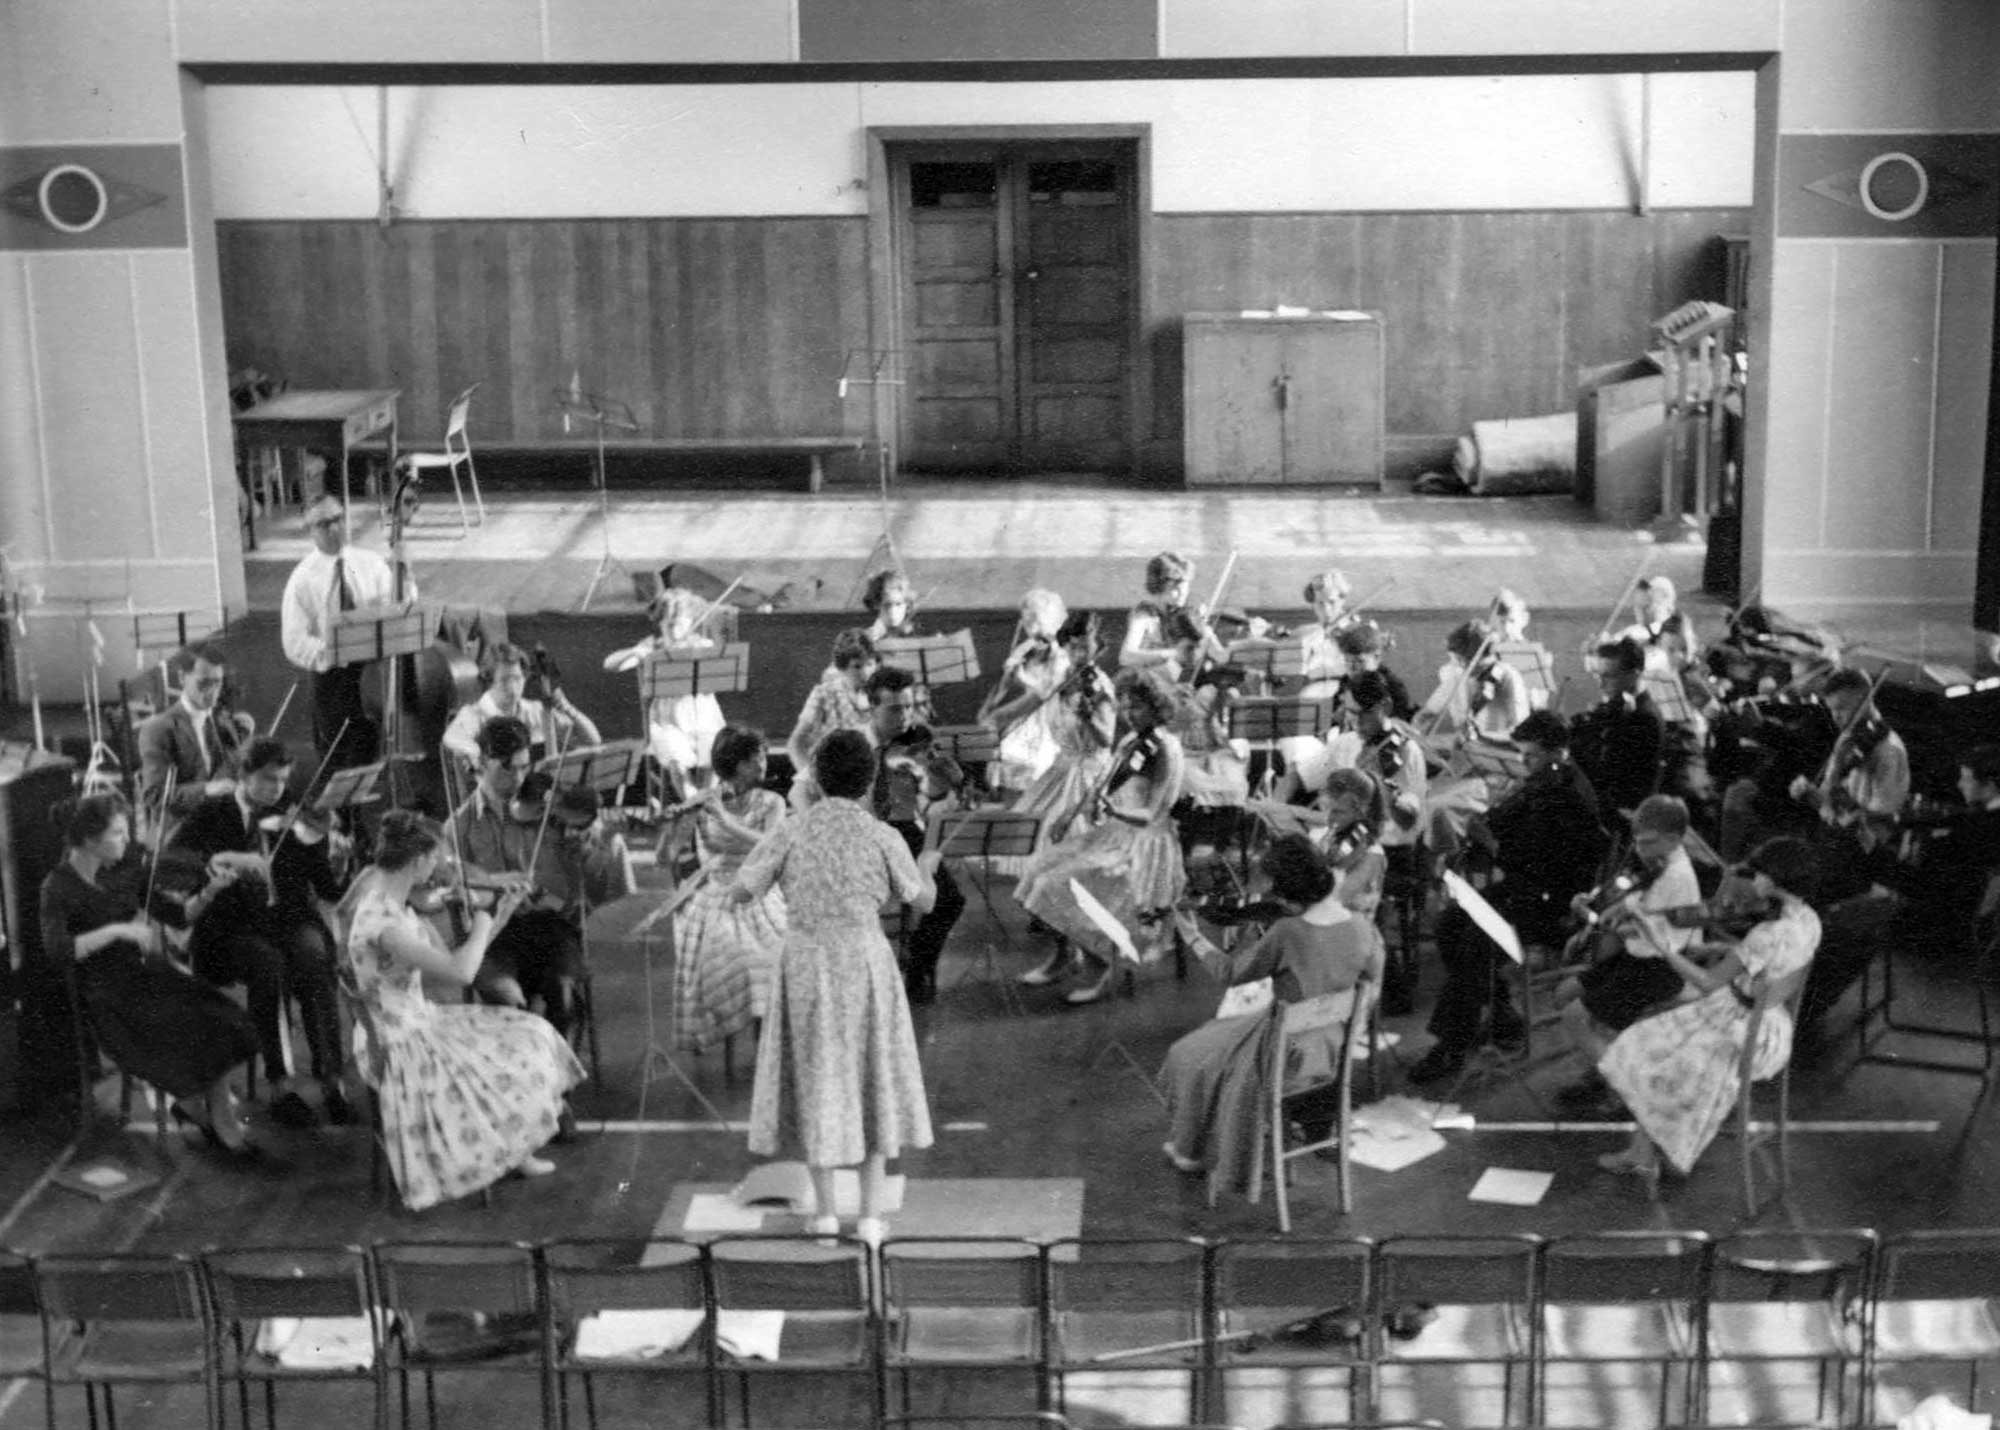 Orchestra in the Assembly Hall